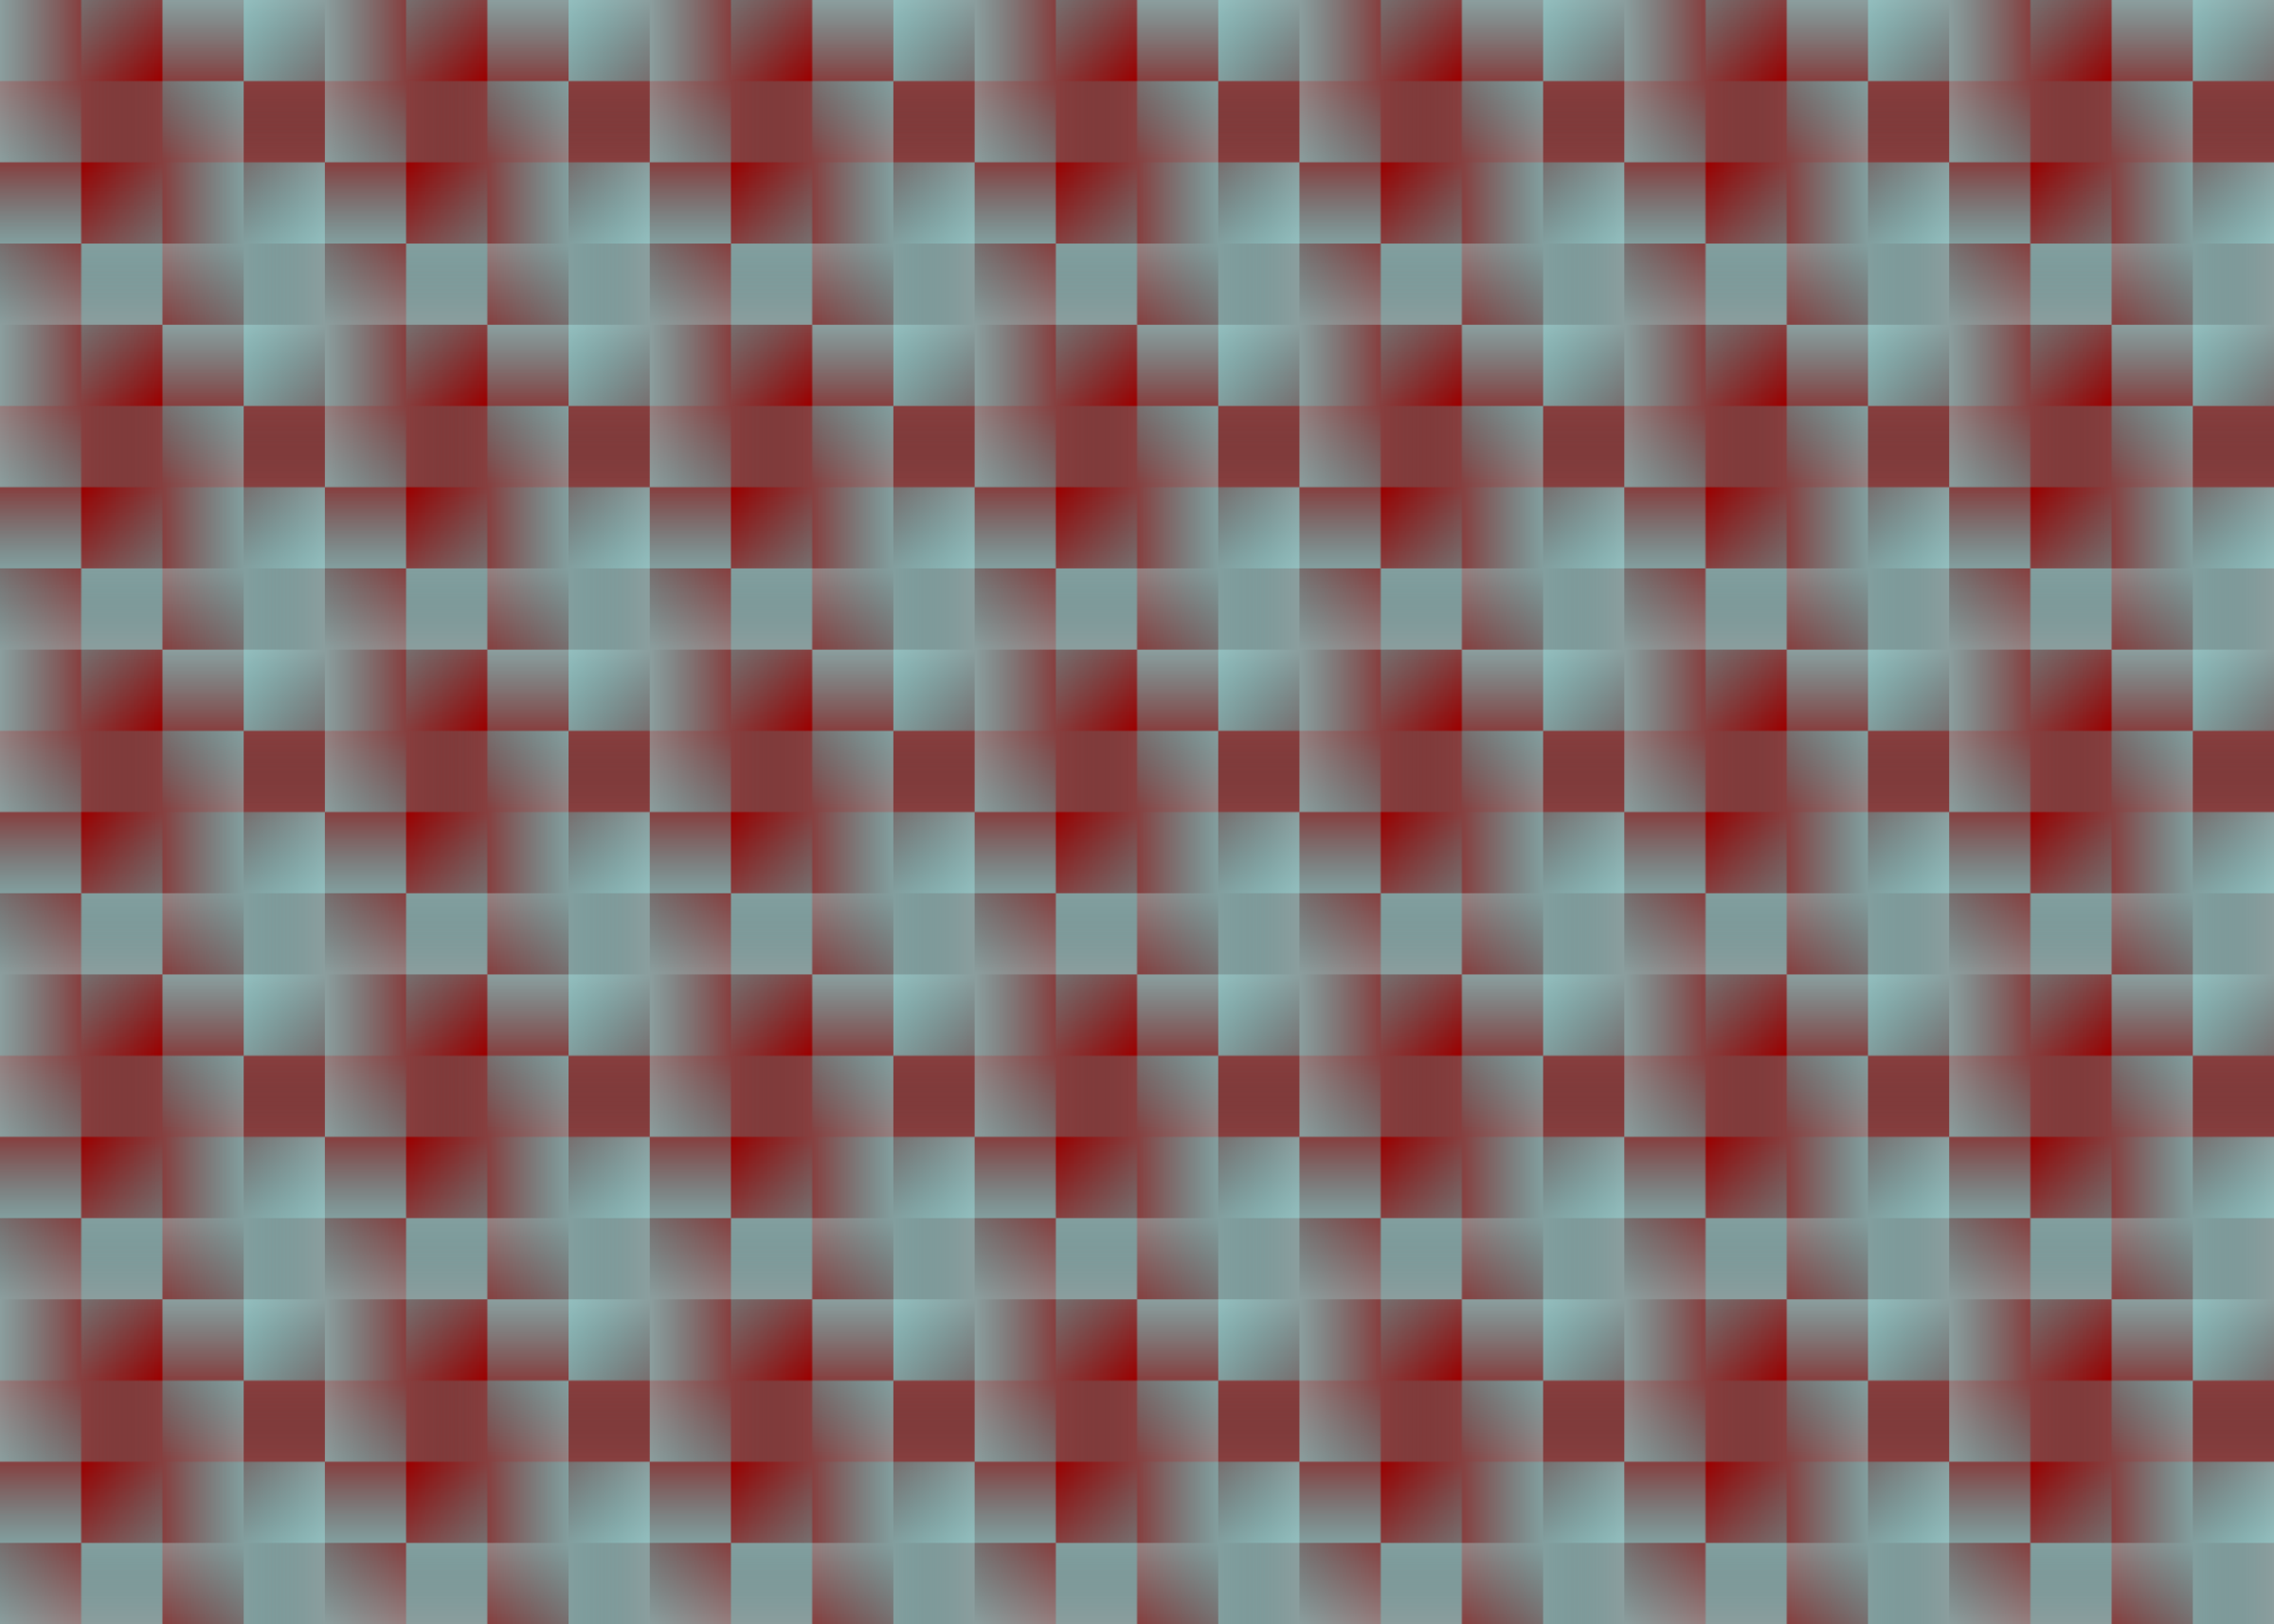 Background pattern 251 (colour 5) by Firkin